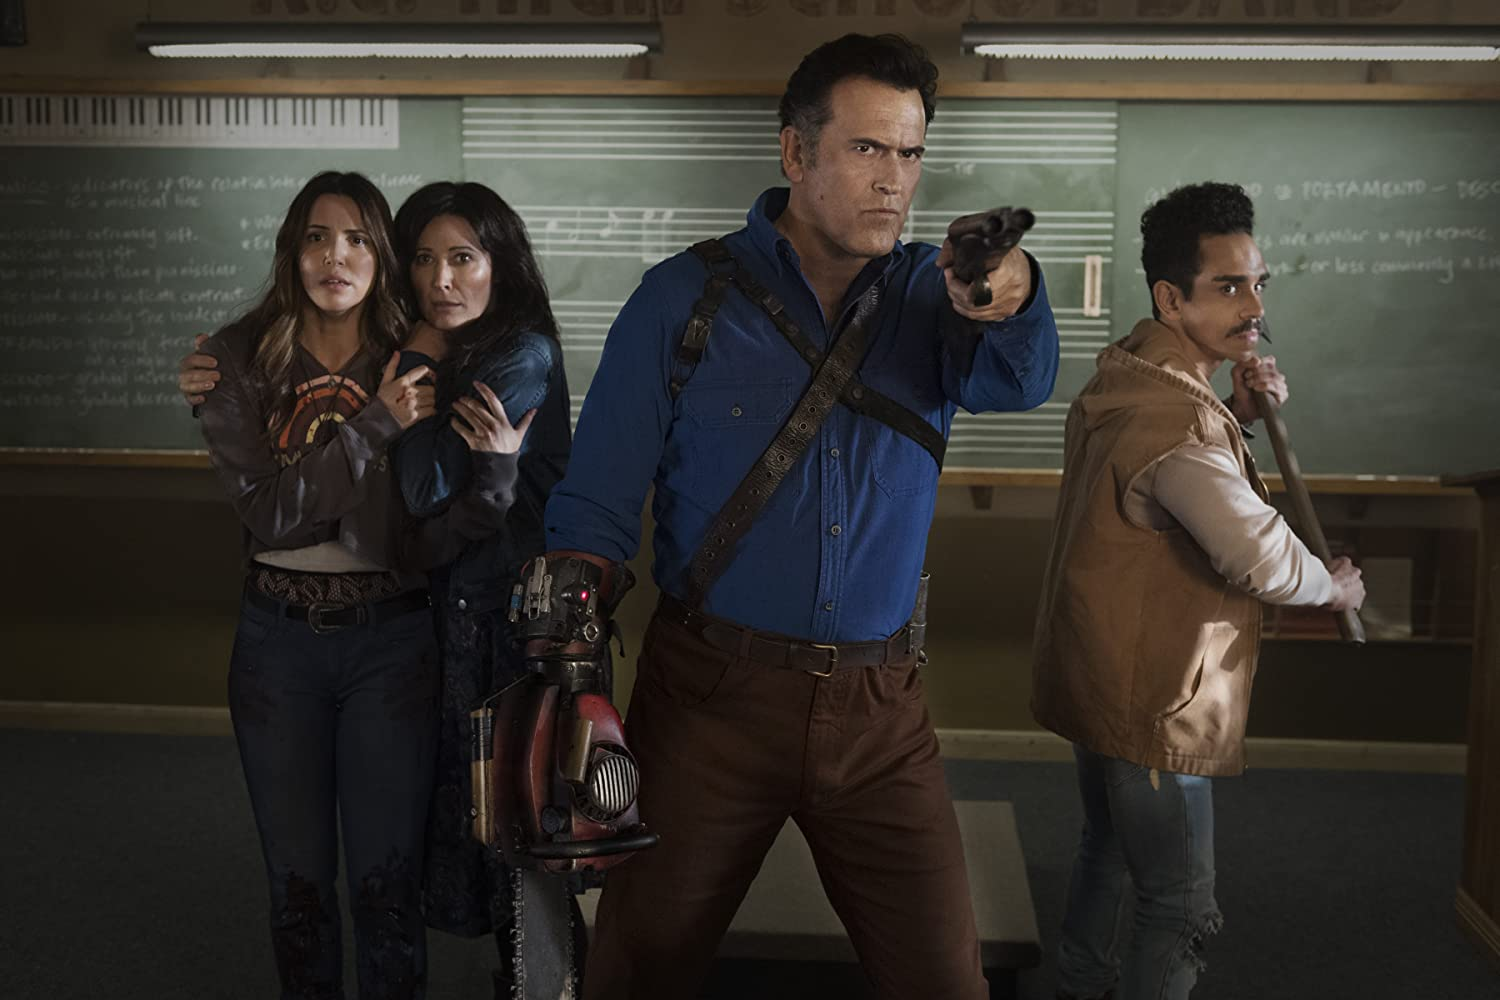 Bruce Campbell, Katrina Hobbs, Ray Santiago, and Arielle Carver-O'Neill in Ash vs Evil Dead (2015)